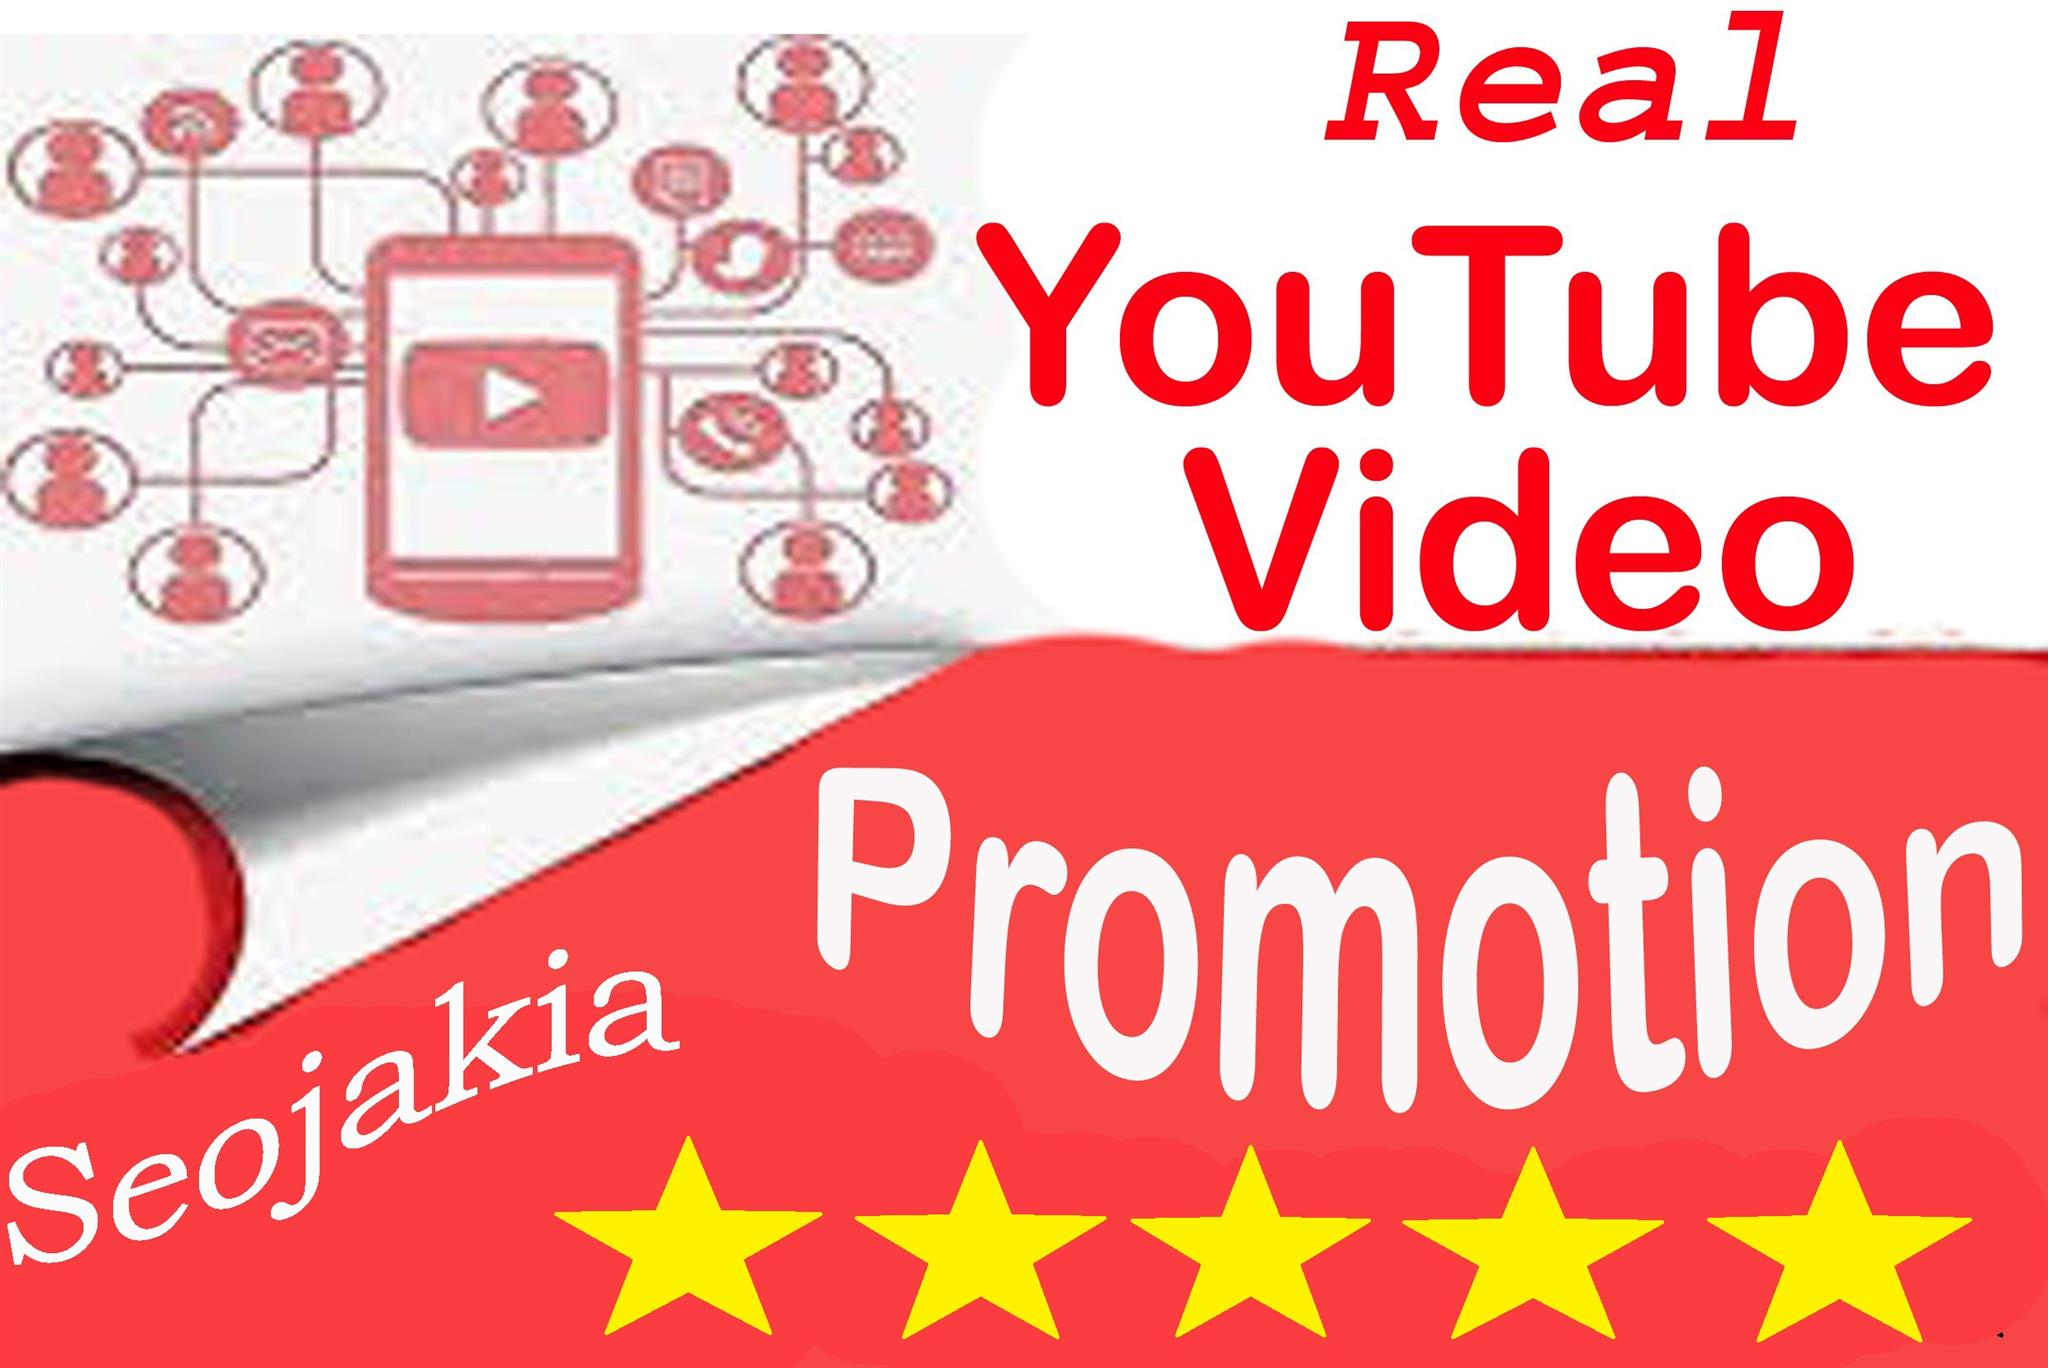 Organic Youtube  Marketing Seo Video Ranking Promotion